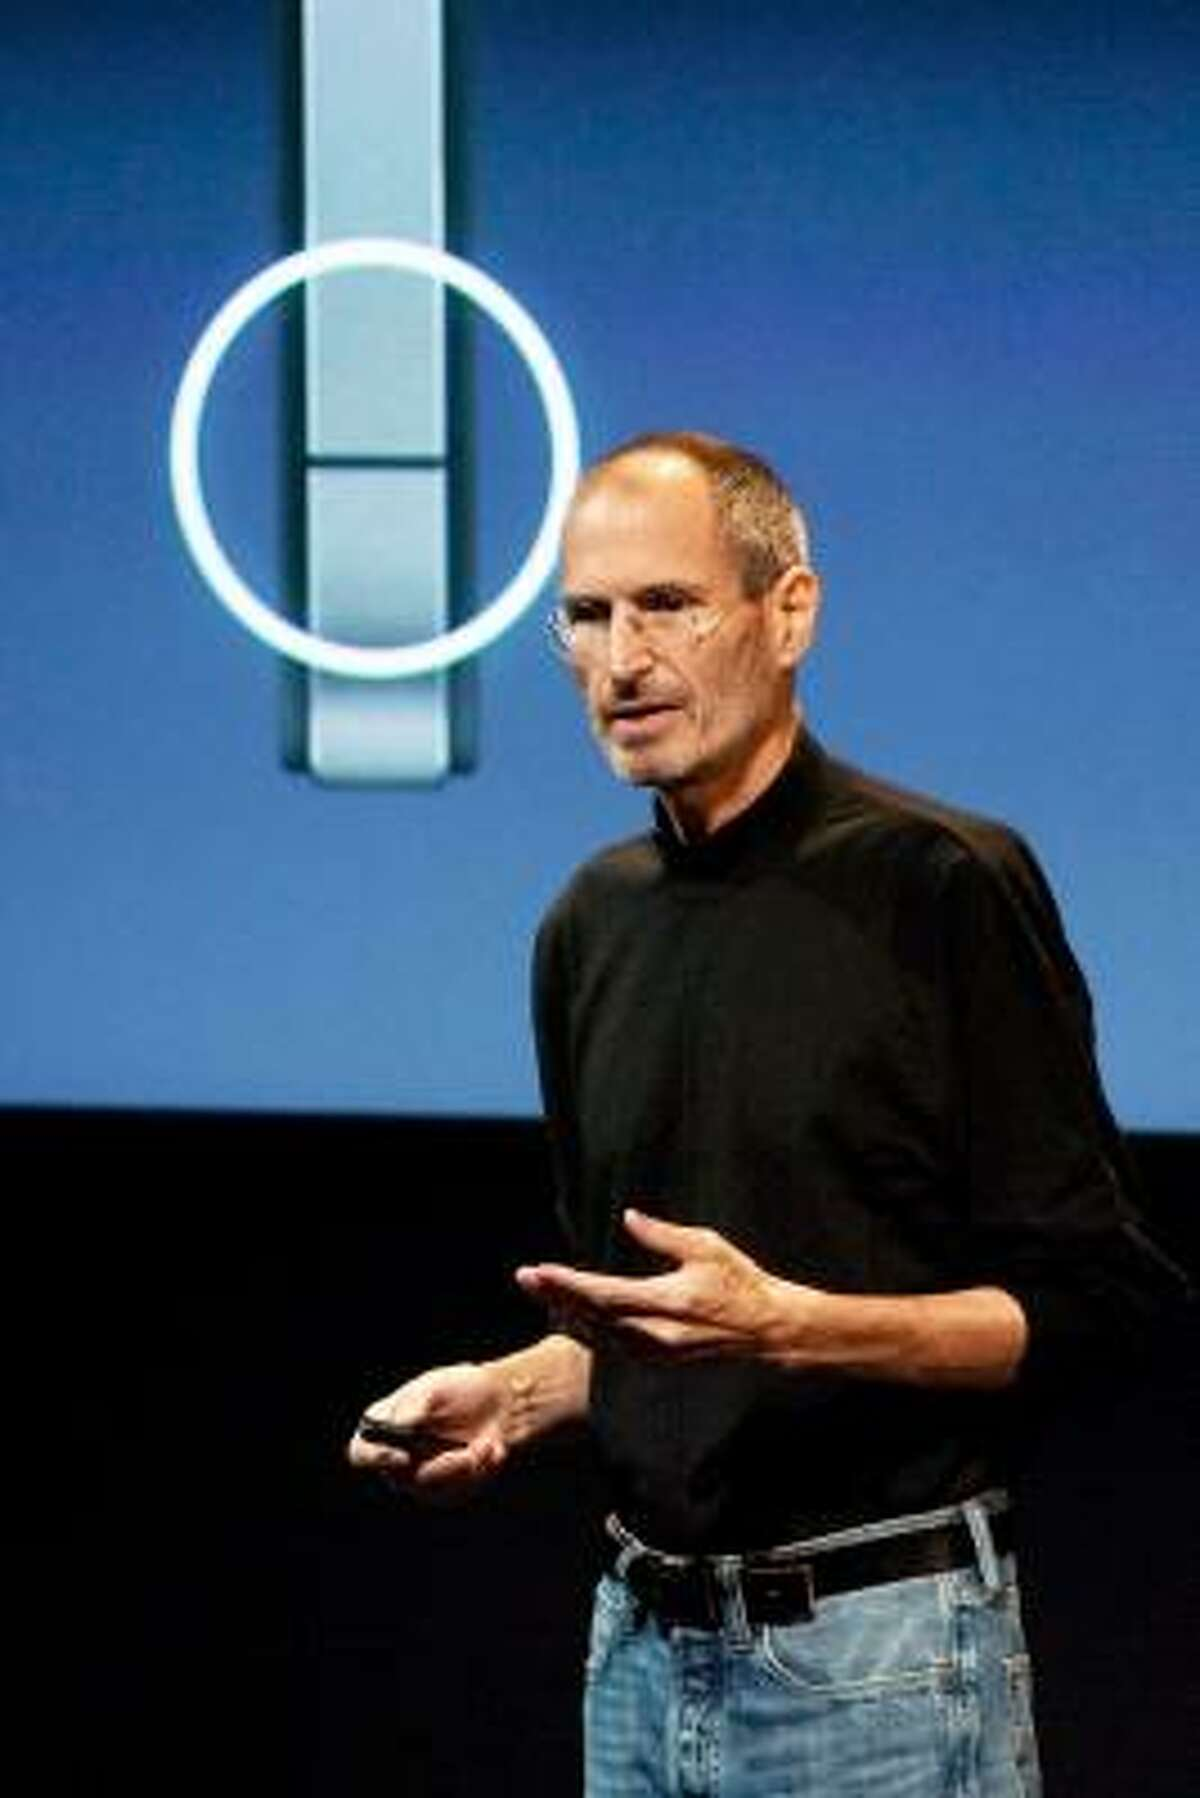 Steve Jobs, CEO of Apple Inc., speaking at a news conference Friday, acknowledged reception problems users are having with the iPhone 4, but said the device won't be altered.